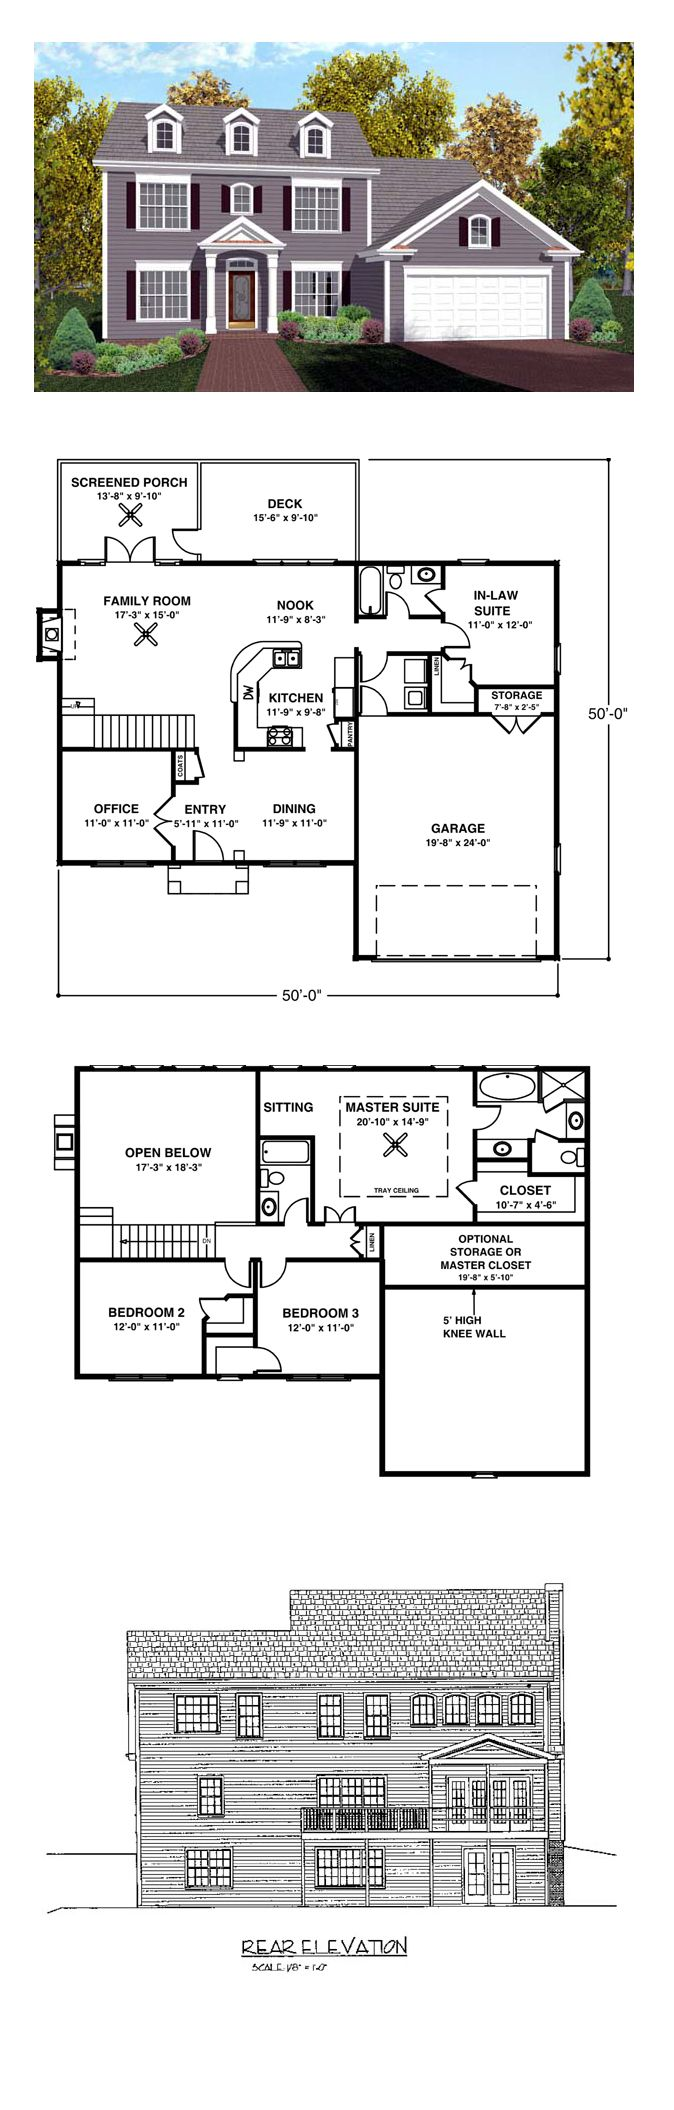 17 best images about house plans with in law suites on for In law floor plans